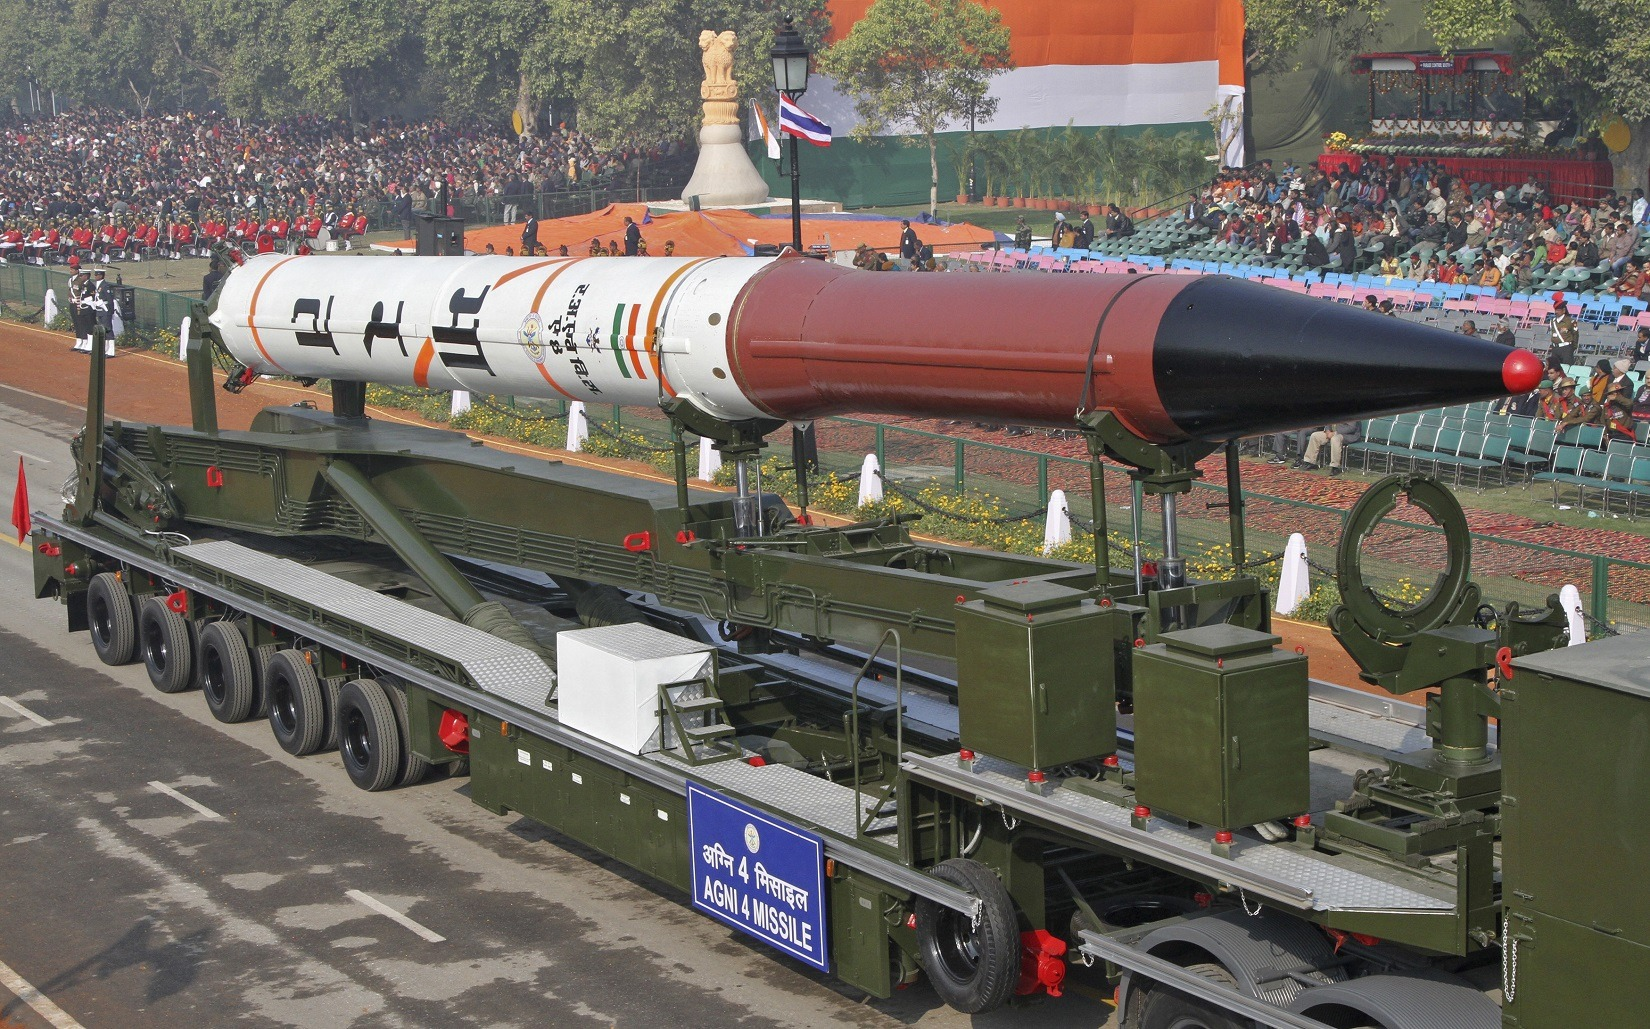 Revisit Role of Nuclear Weapons To Make the Right Choices